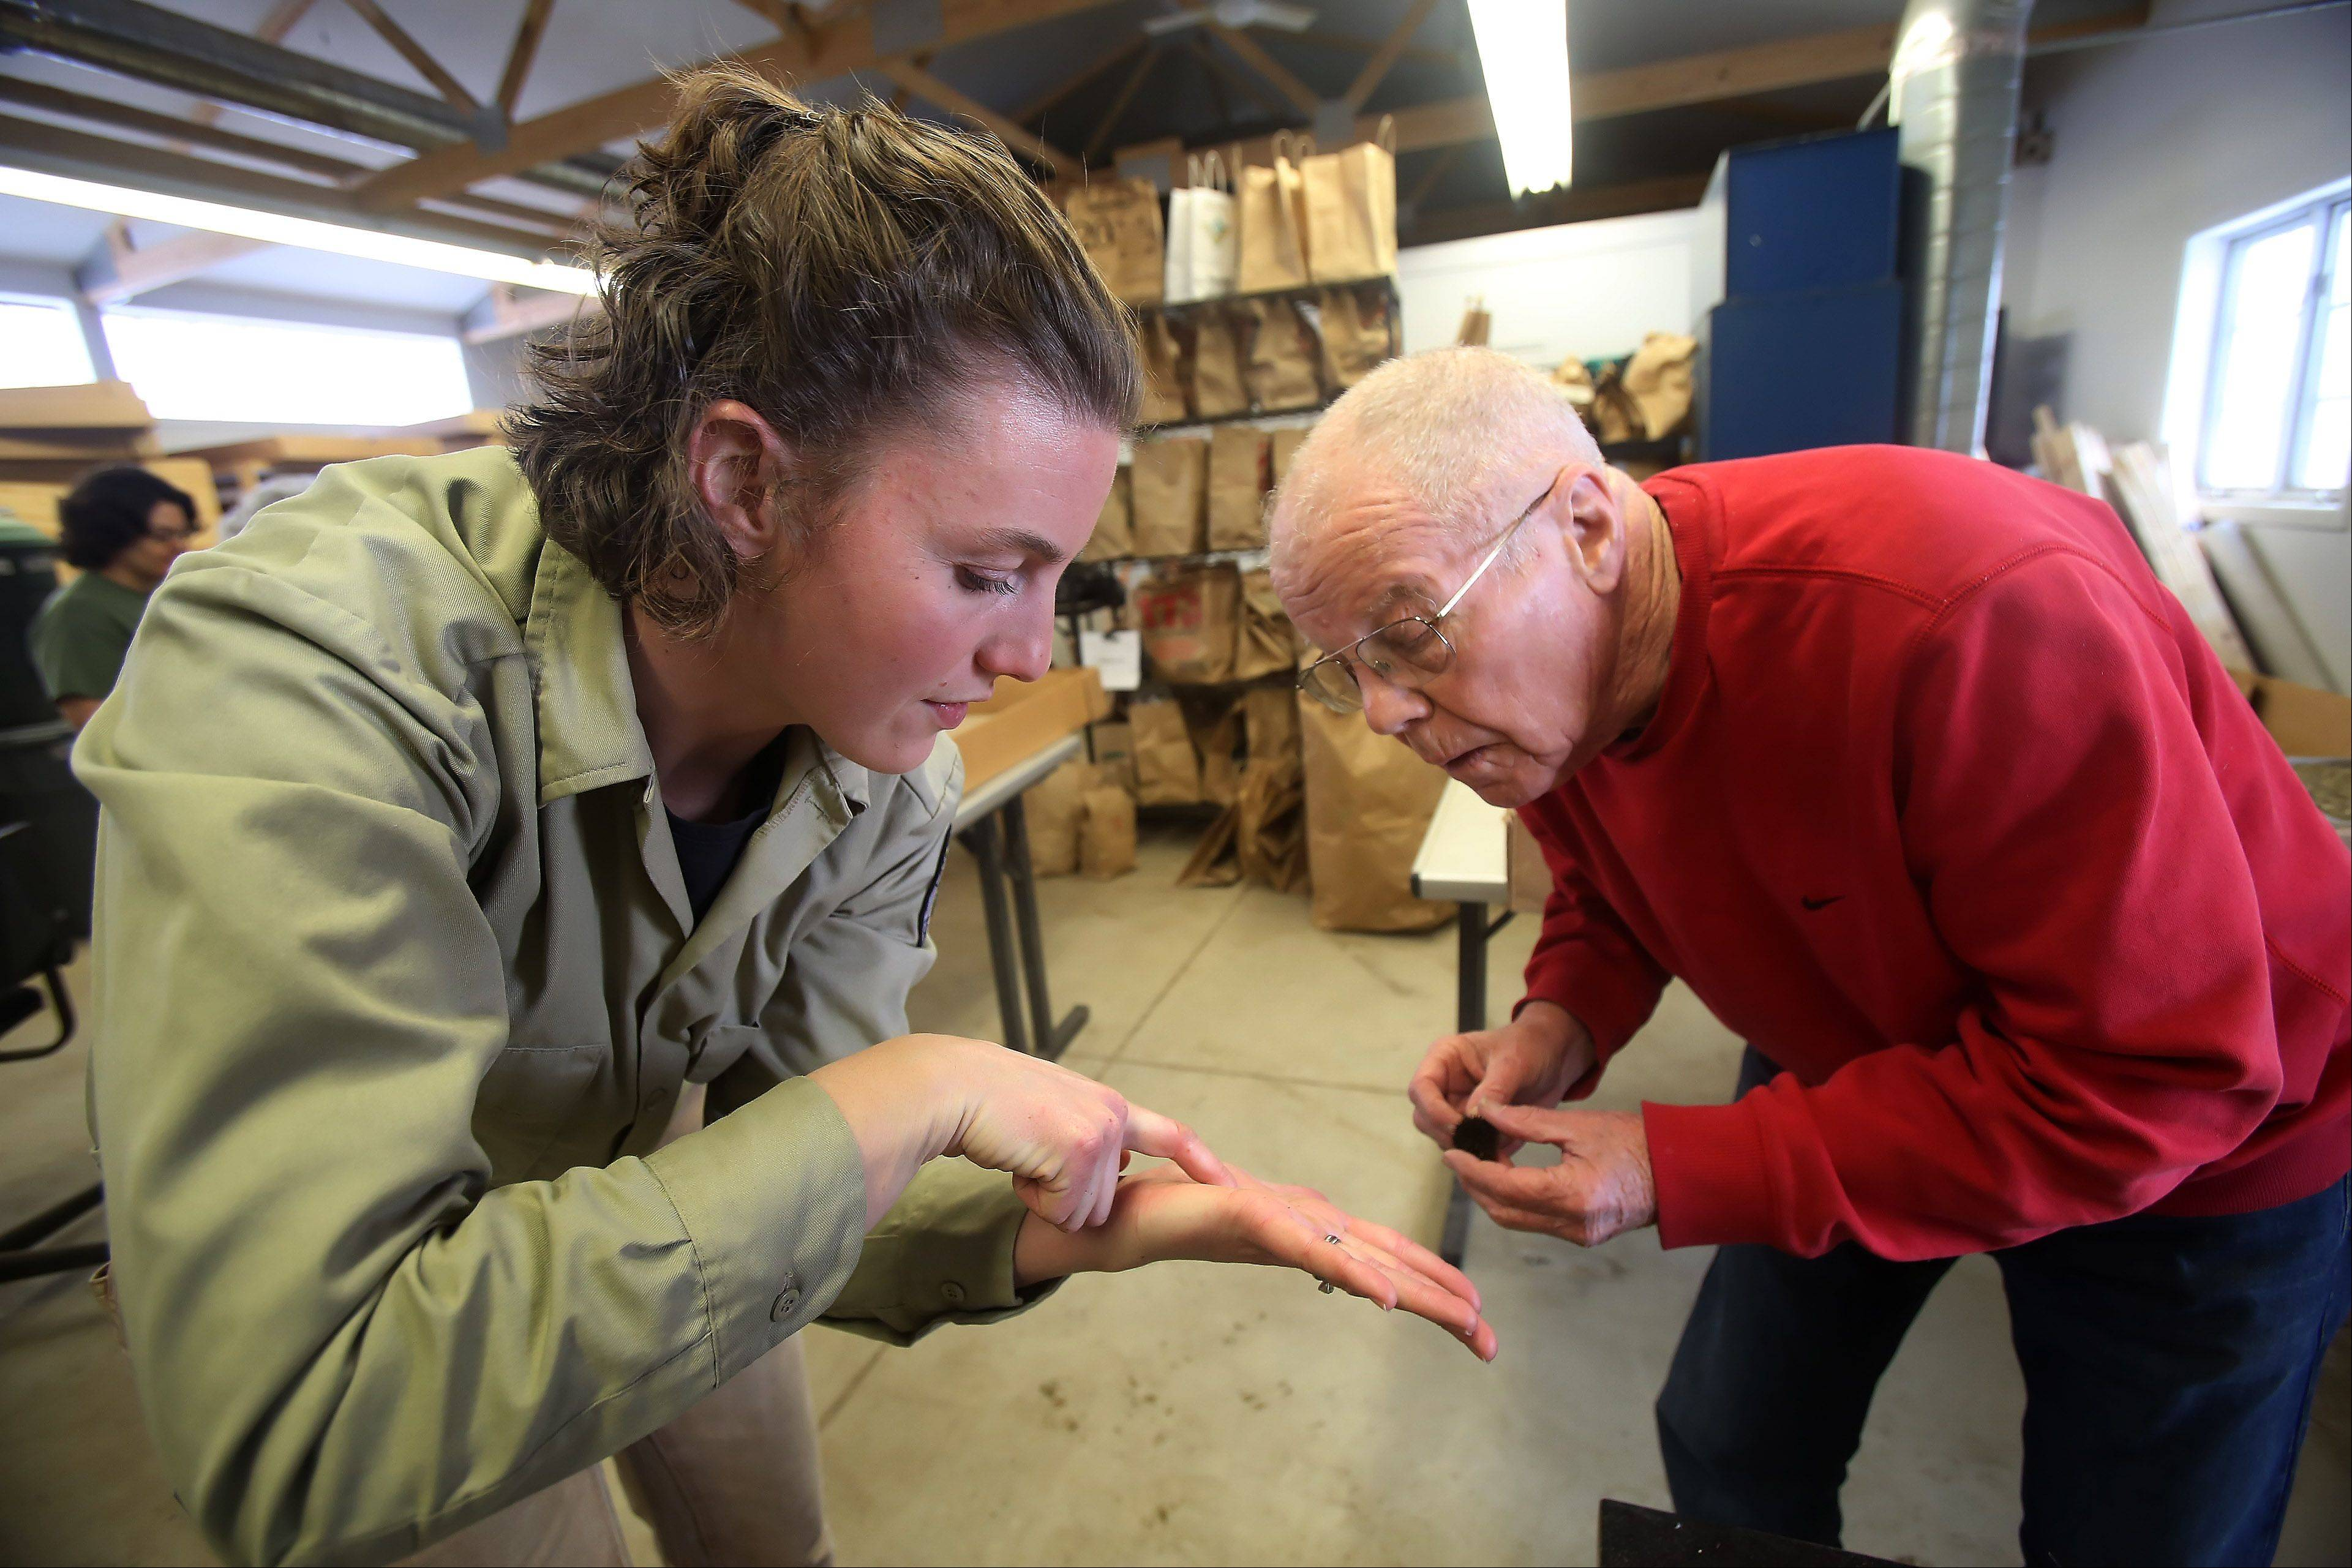 Kelly Schultz, nursery coordinator for the Lake County Forest Preserve District, shows volunteer Jim Jobes of Grayslake seeds from purple coneflowers. Volunteers process native seeds at the facility at the Rollins Savanna for use in restoration projects.